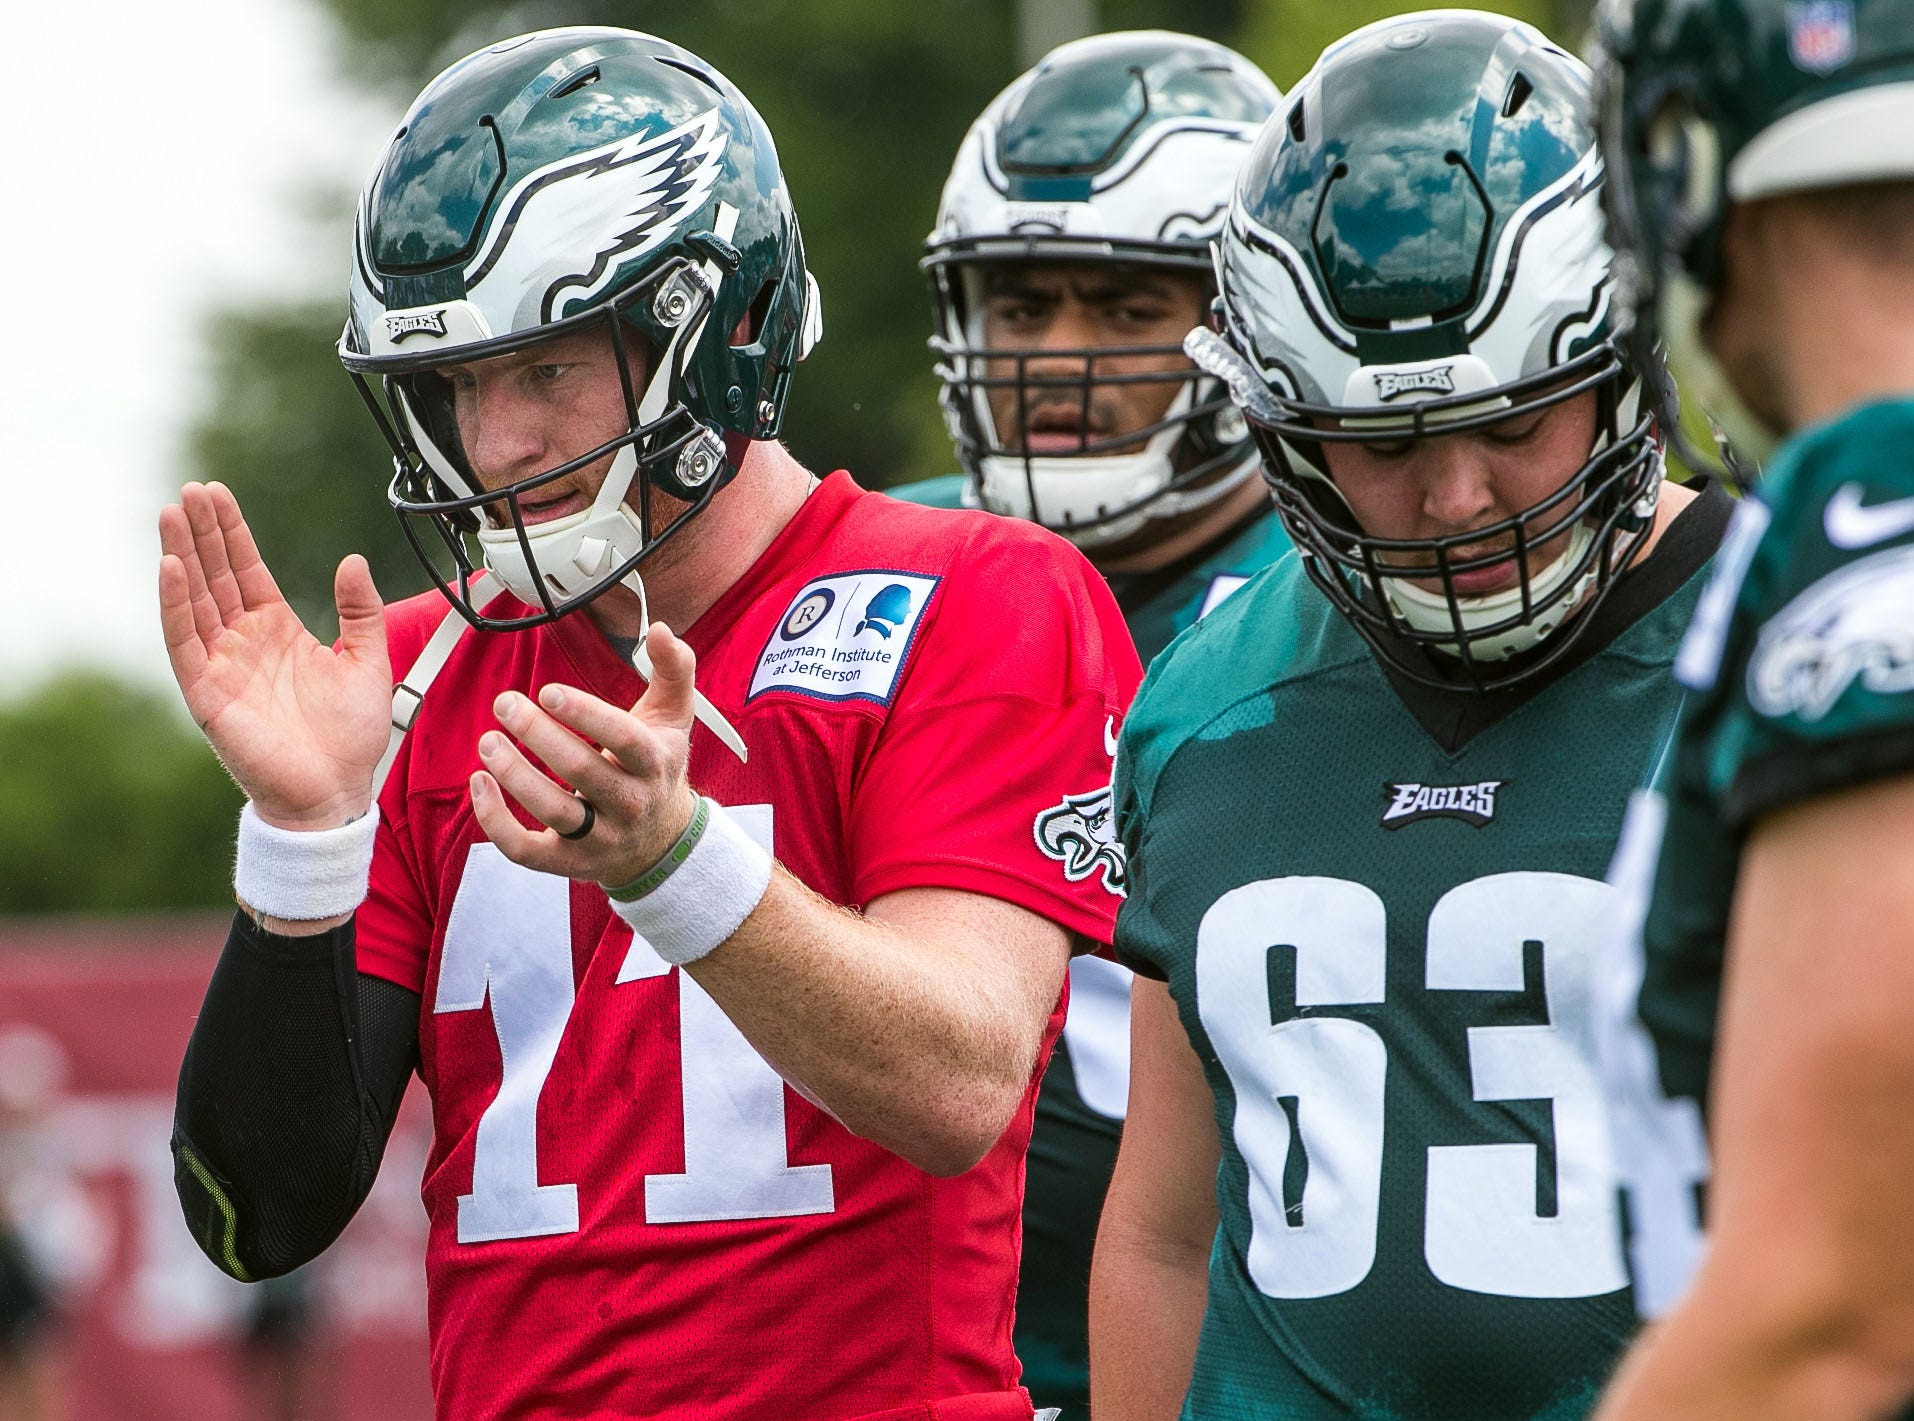 1. Eagles (1): On paper (games evidently aren't played there), lineup looks stronger than Super Bowl version, assuming Carson Wentz and Jason Peters are full go by Week 1 and Michael Bennett and Haloti Ngata fully assimilate.